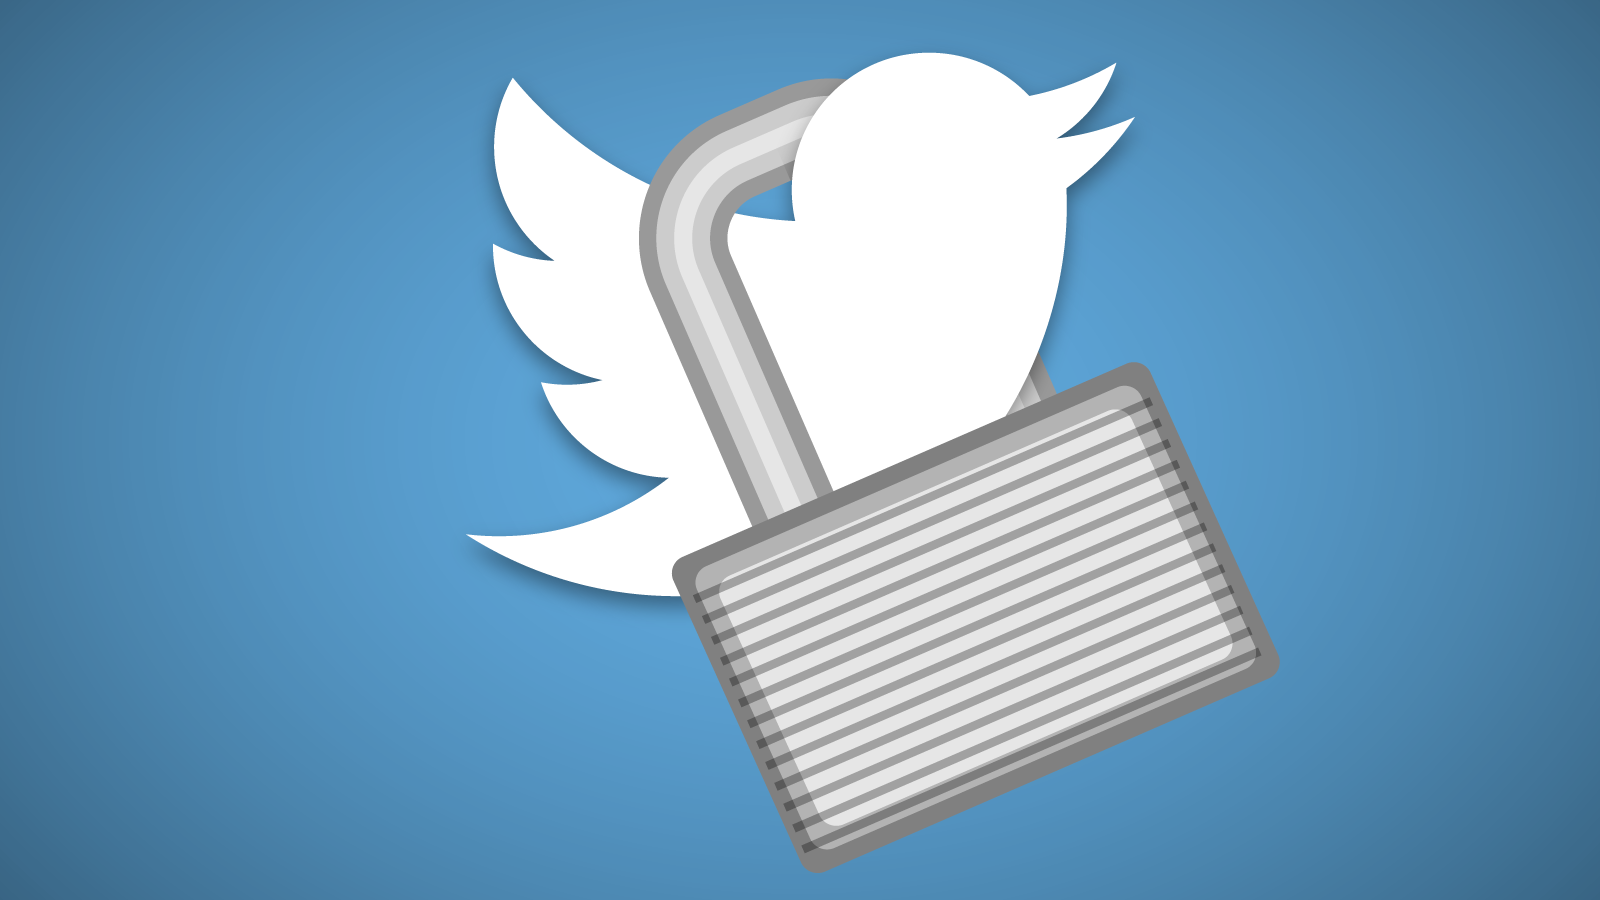 Twitter 'testing' secret encryted messaging service